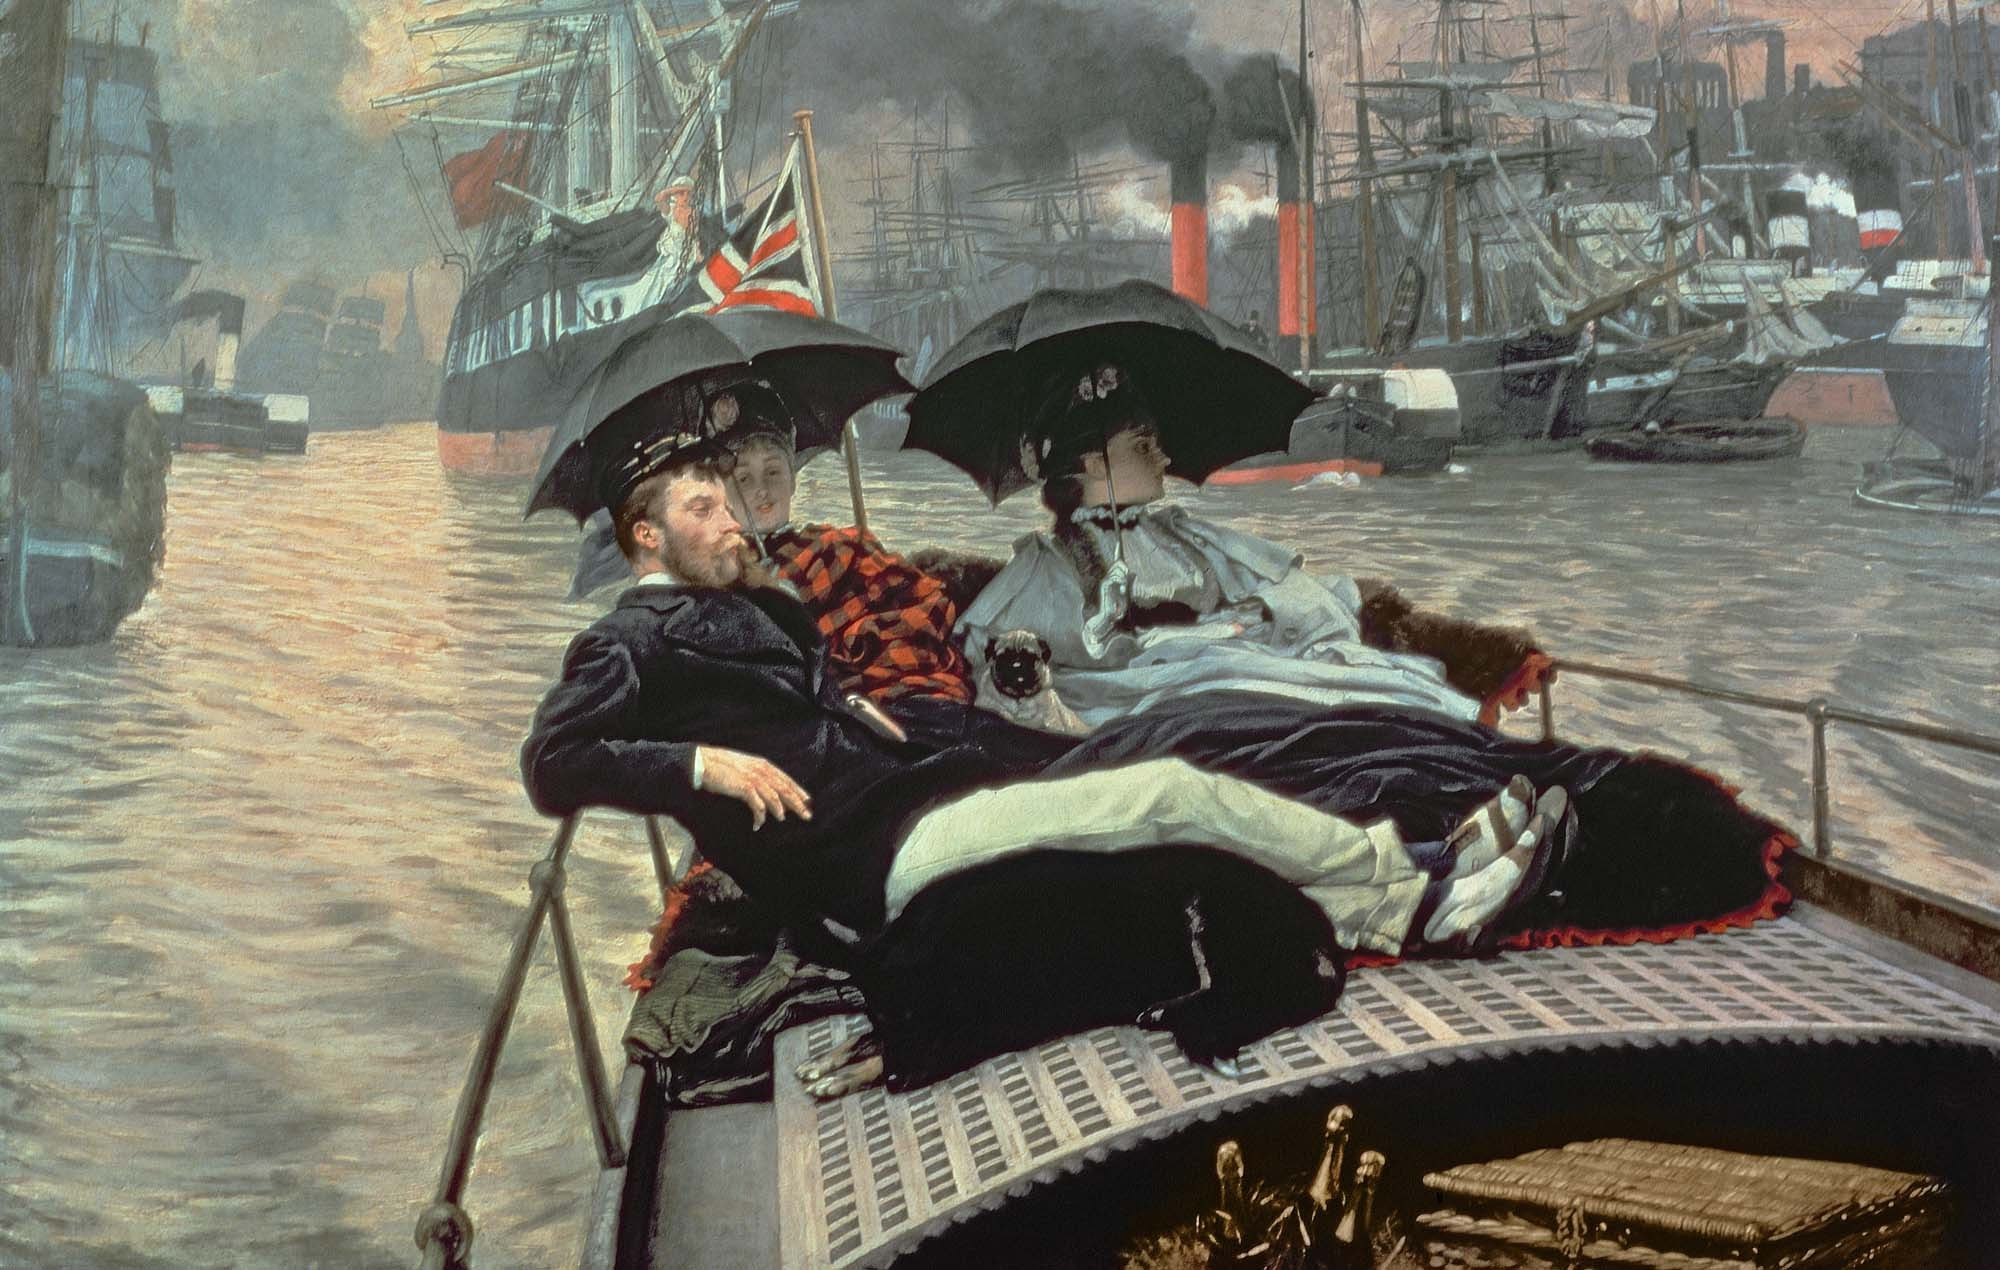 James Tissot | Buy Posters, Frames, Canvas, Digital Art & Large Size Prints Of The Famous Modern Master's Artworks